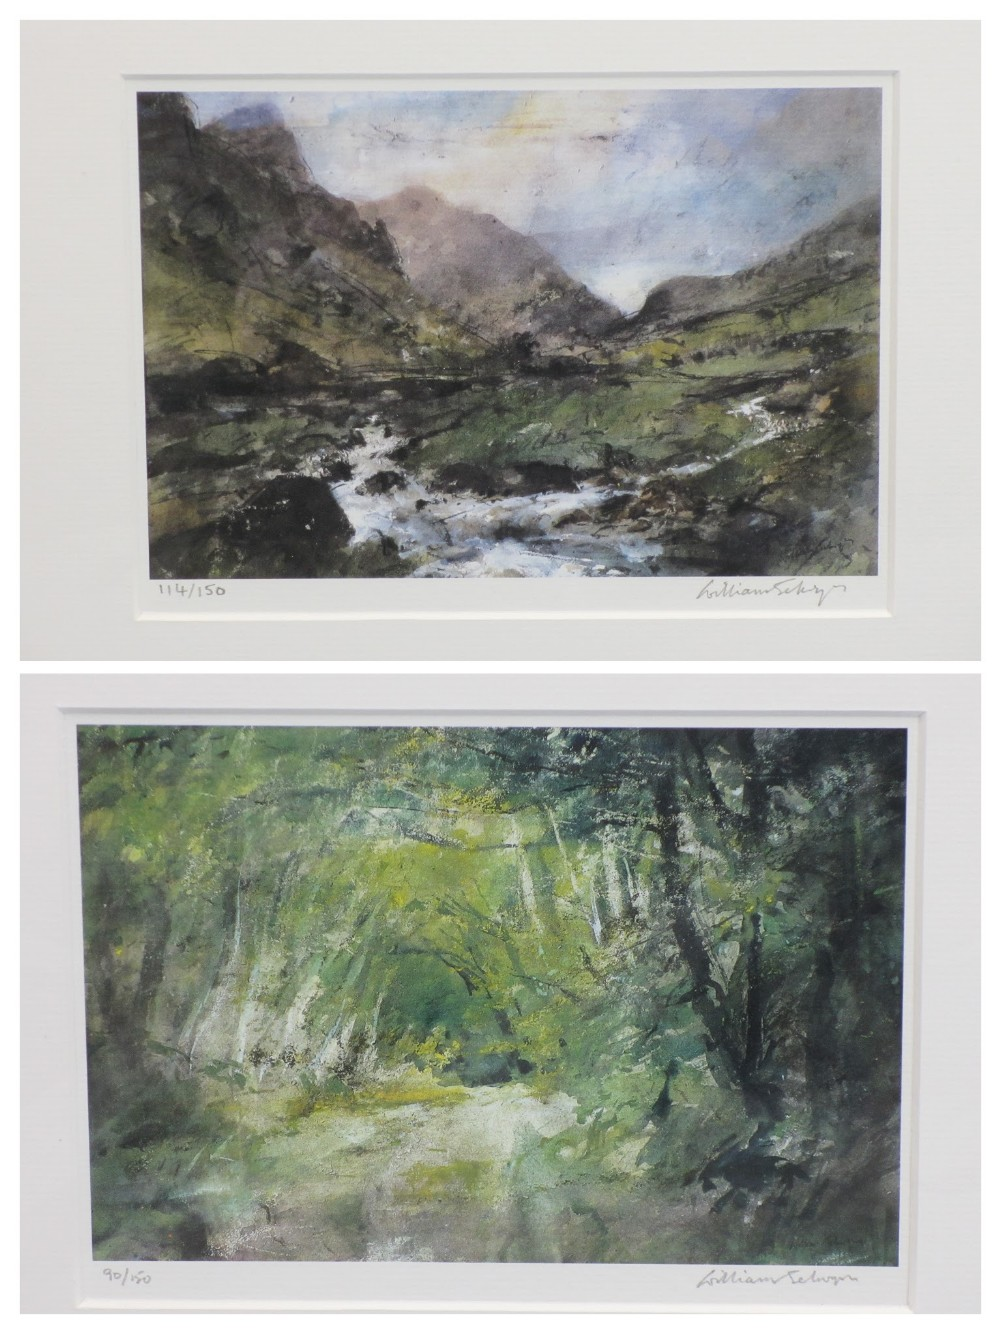 WILLIAM SELWYN limited edition prints (2) 115/150 and 89/150 - Snowdonia and a leafy lane scene,